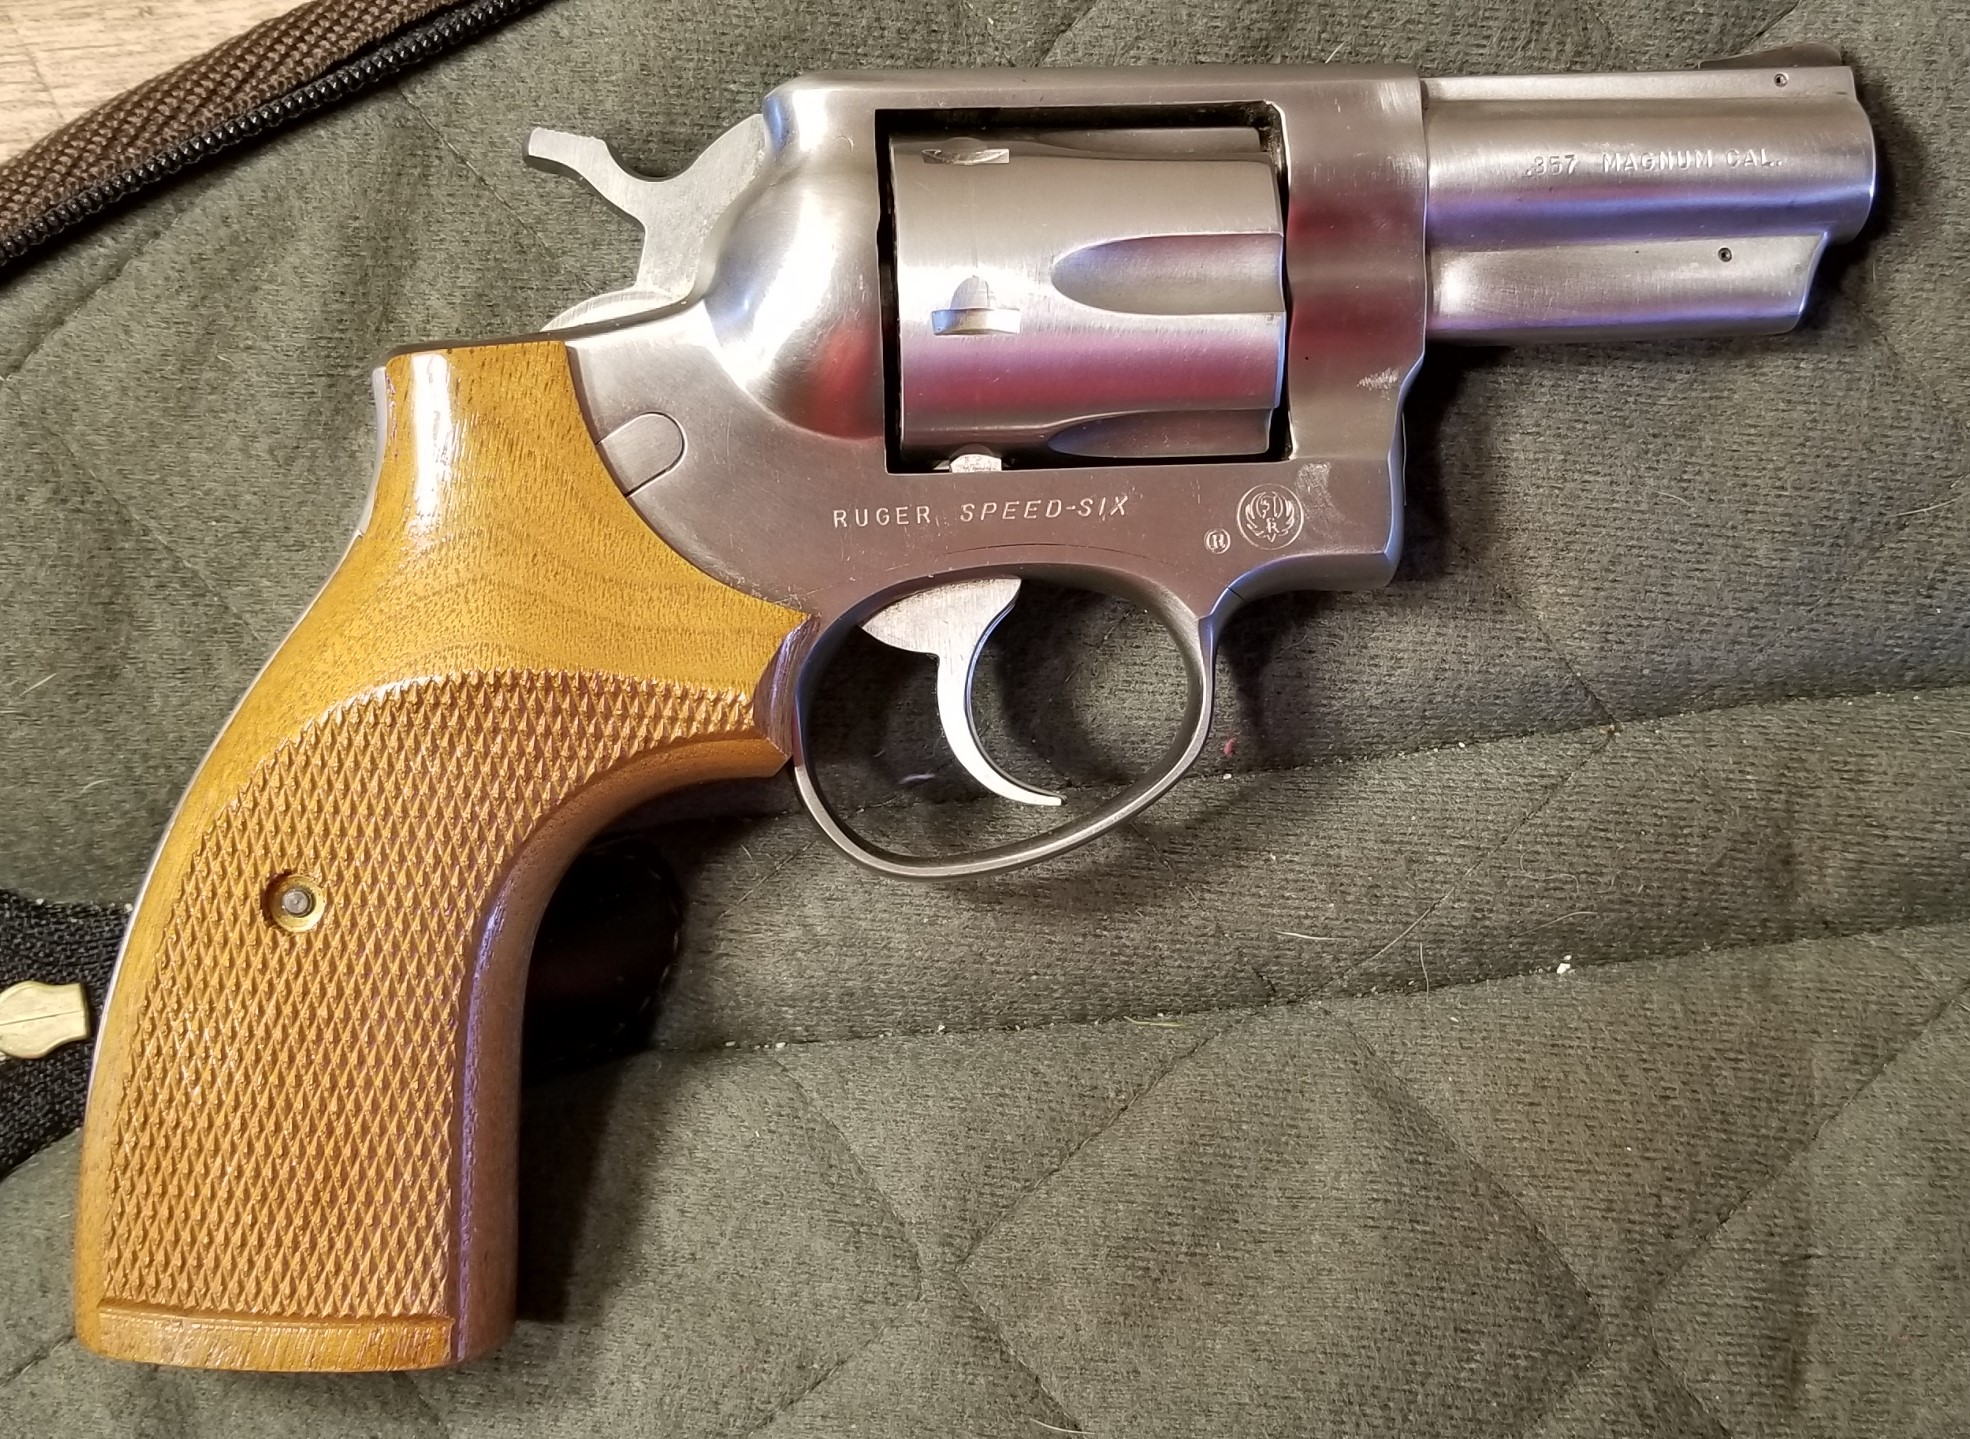 For: i have a very nice ruger speed-six double action